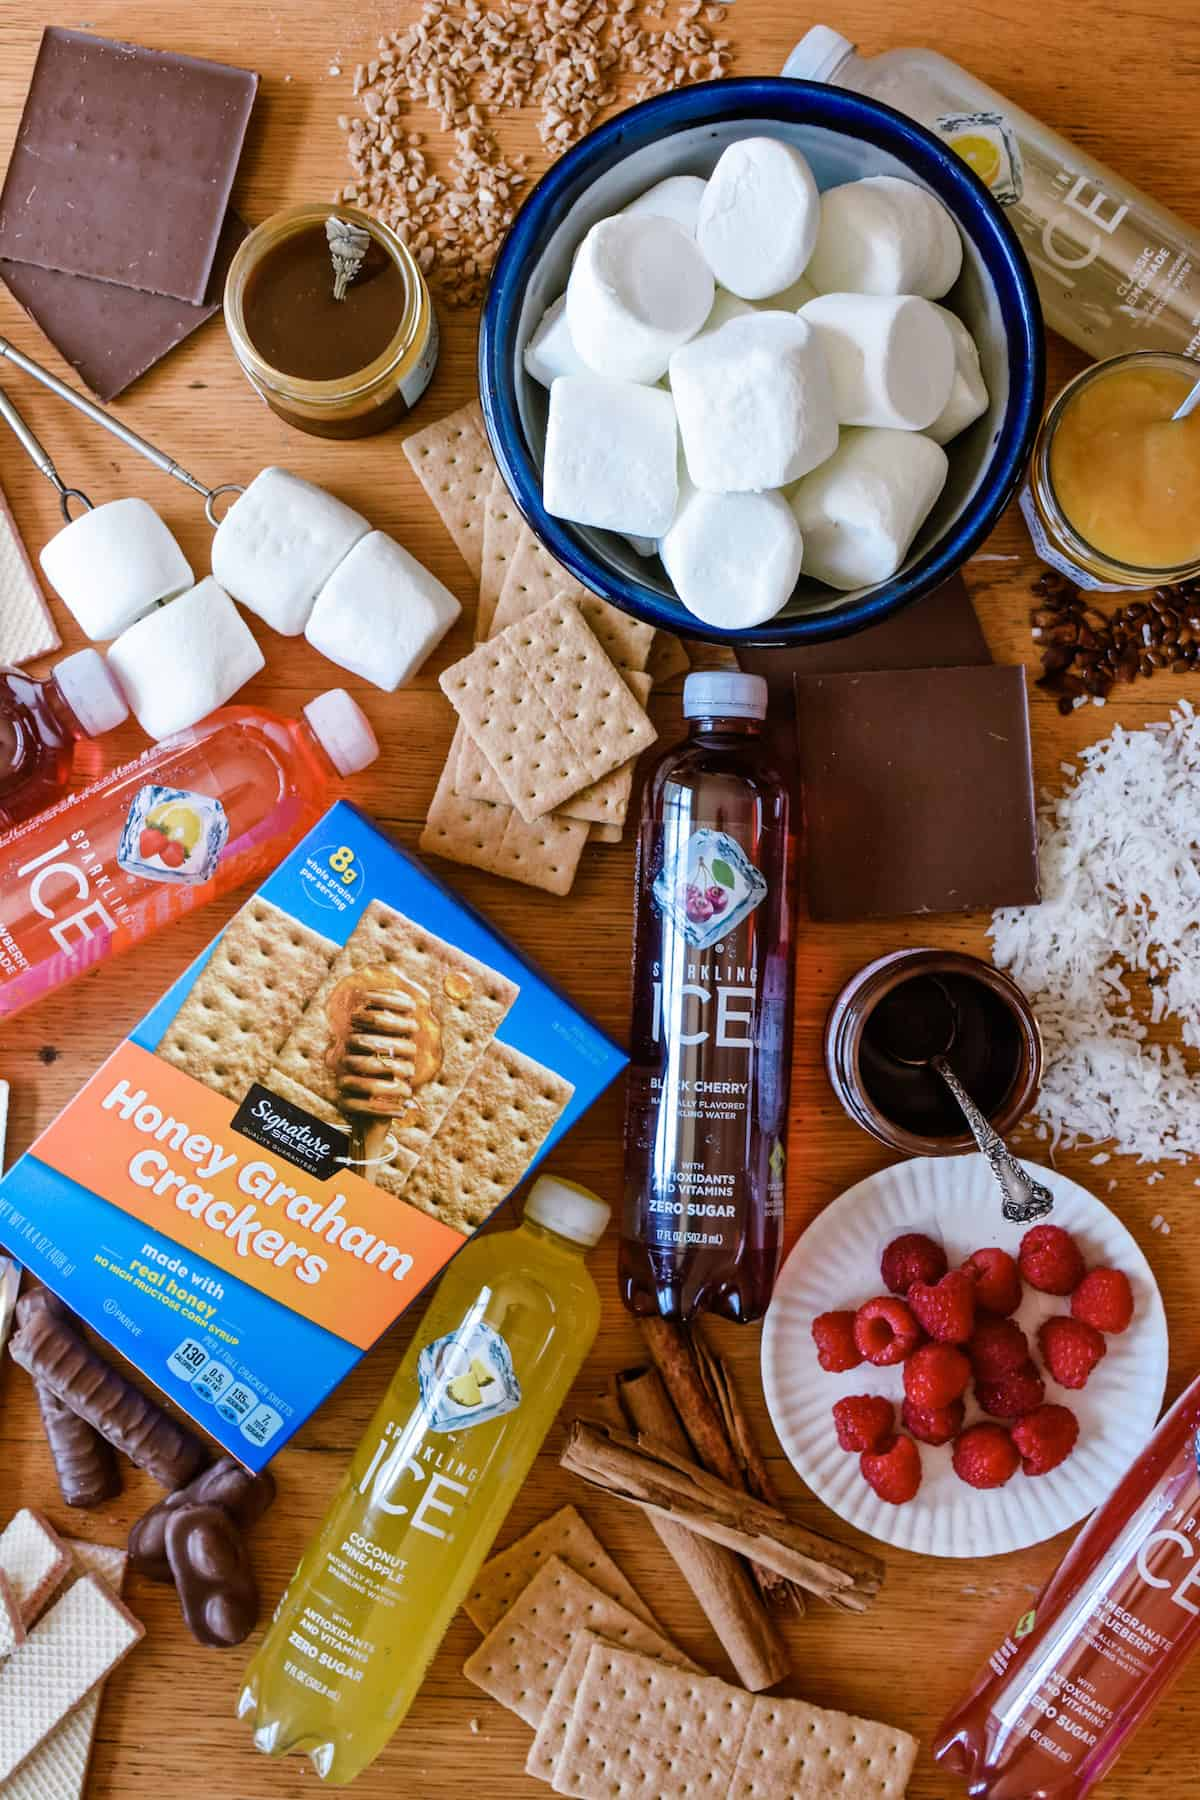 Ingredients for making s'mores on a wooden table, plus bottles of Sparkling Ice.